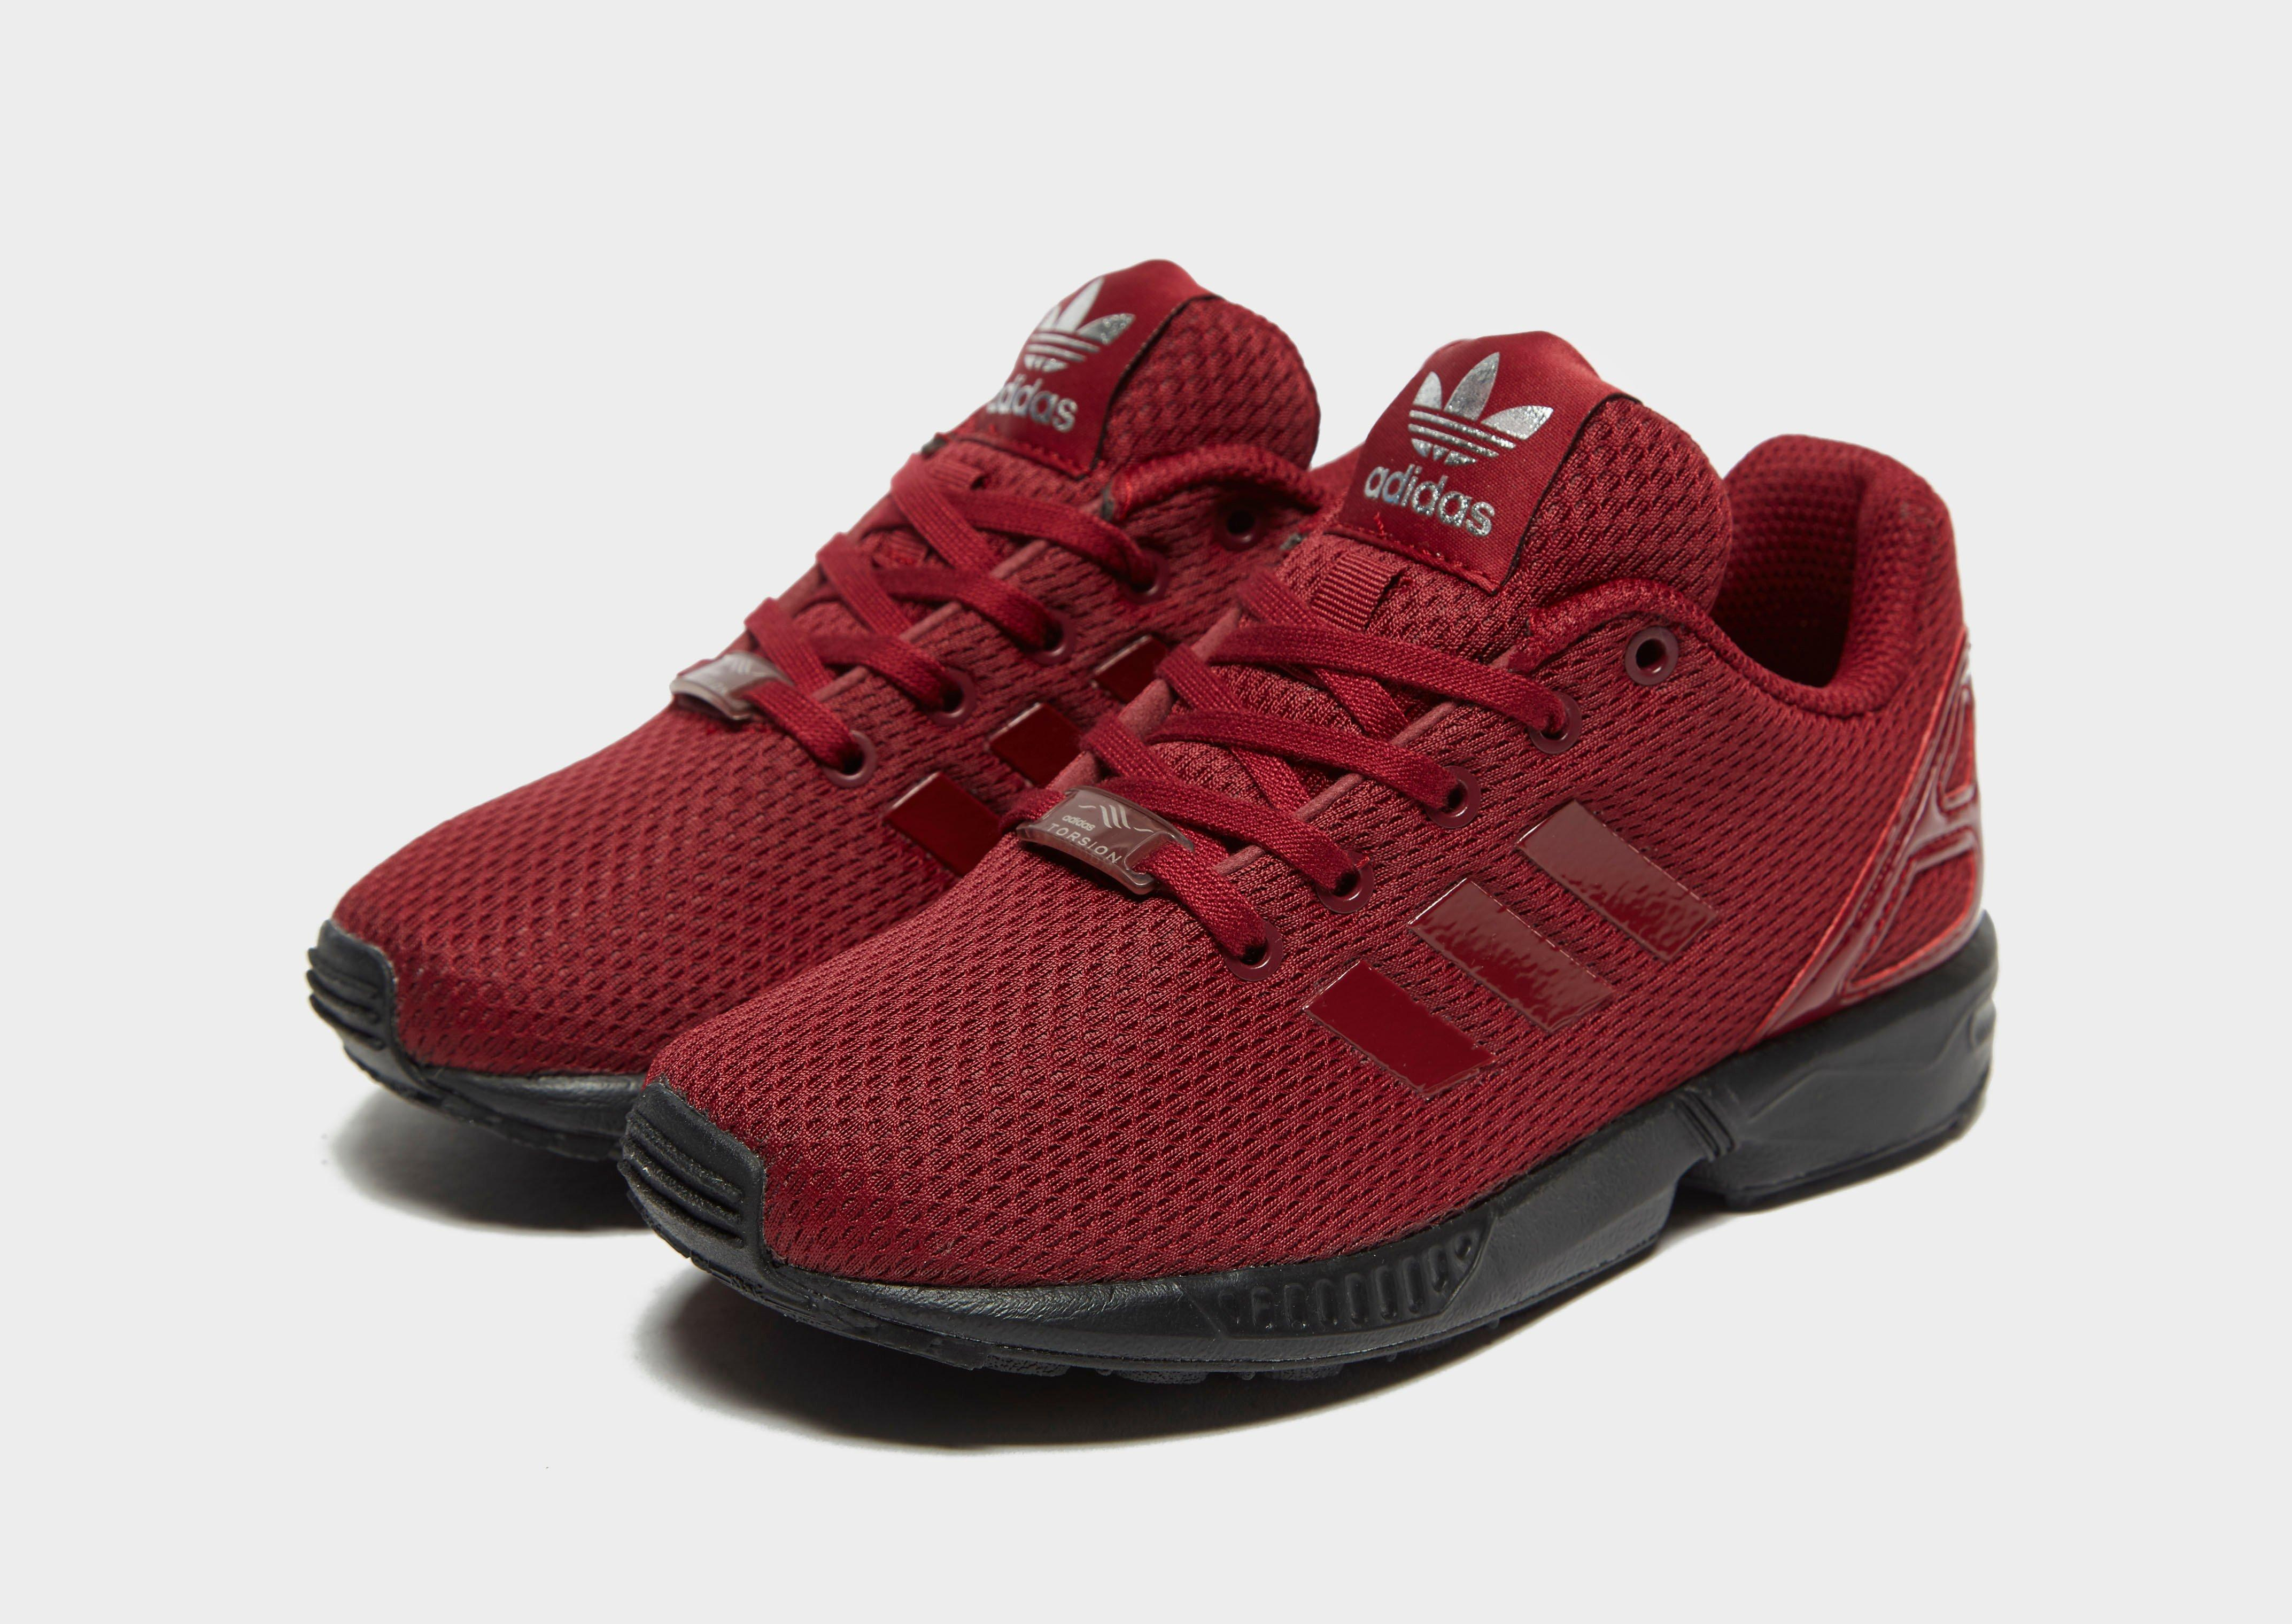 Adidas Zx Flux Red Prism wallbank lfc.co.uk